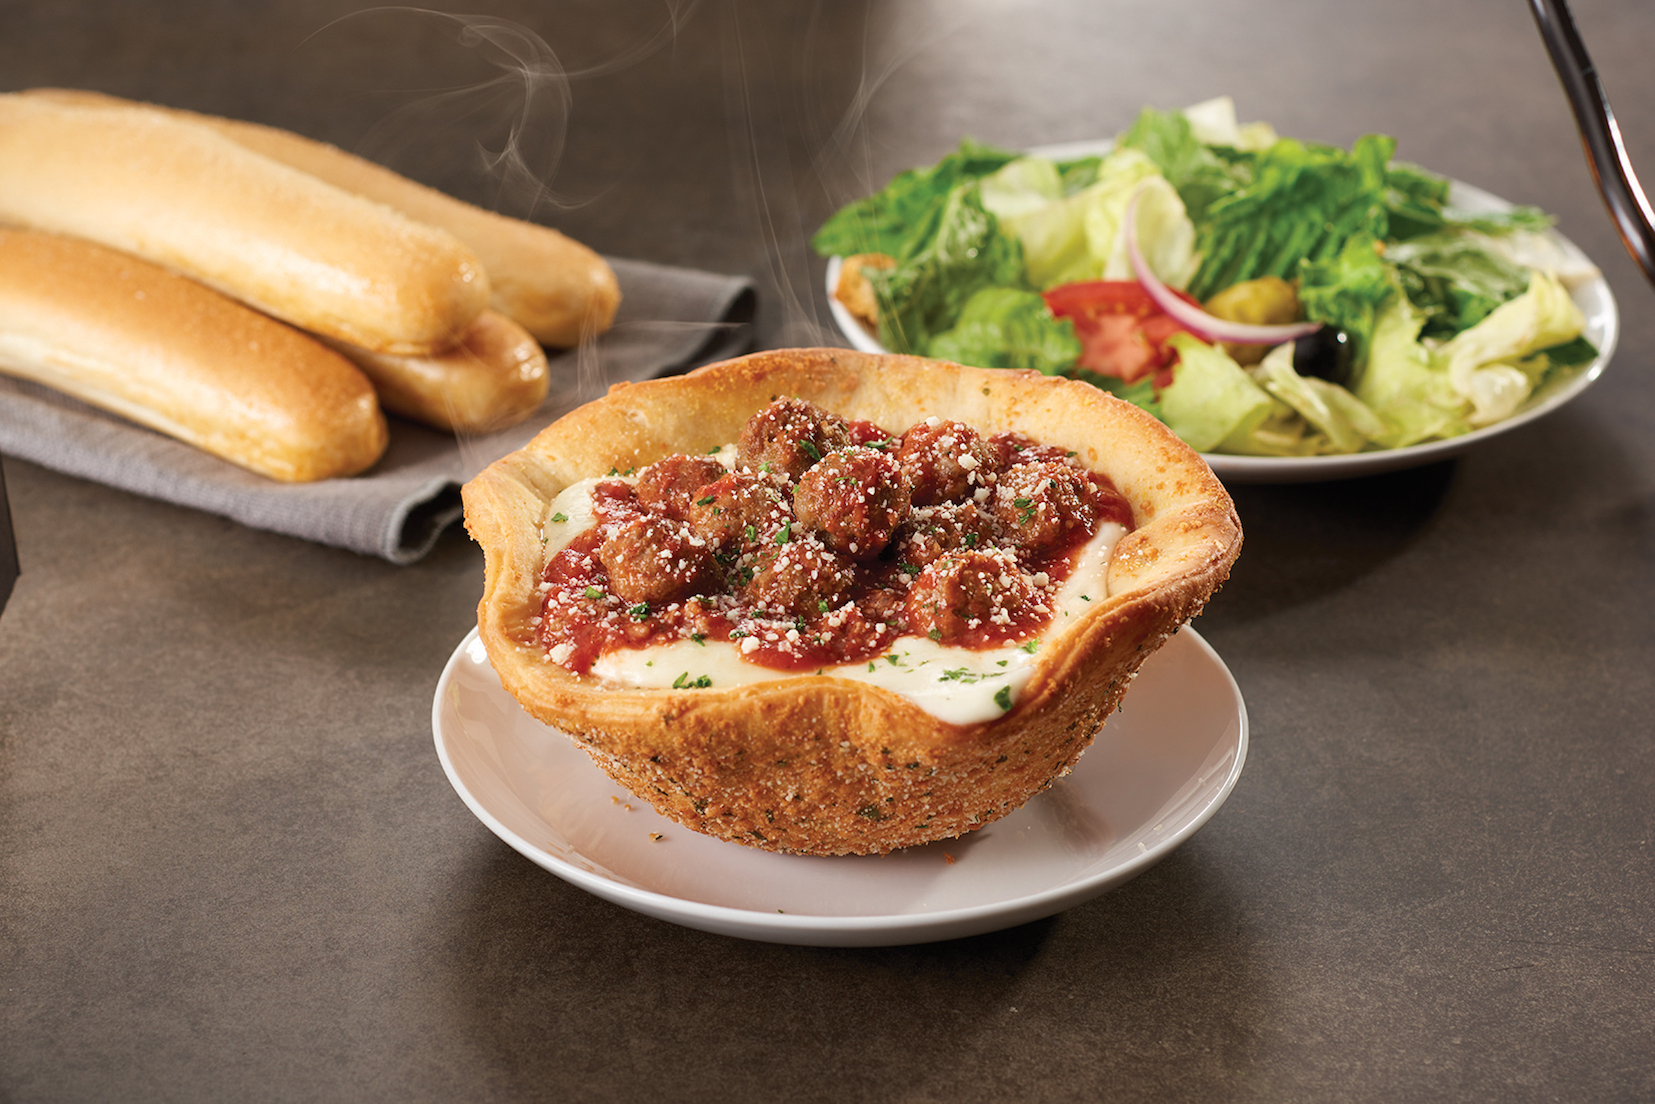 Olive Garden 39 S Newest Menu Item The Meatball Pizza Bowl Is Startling Connecticut Post